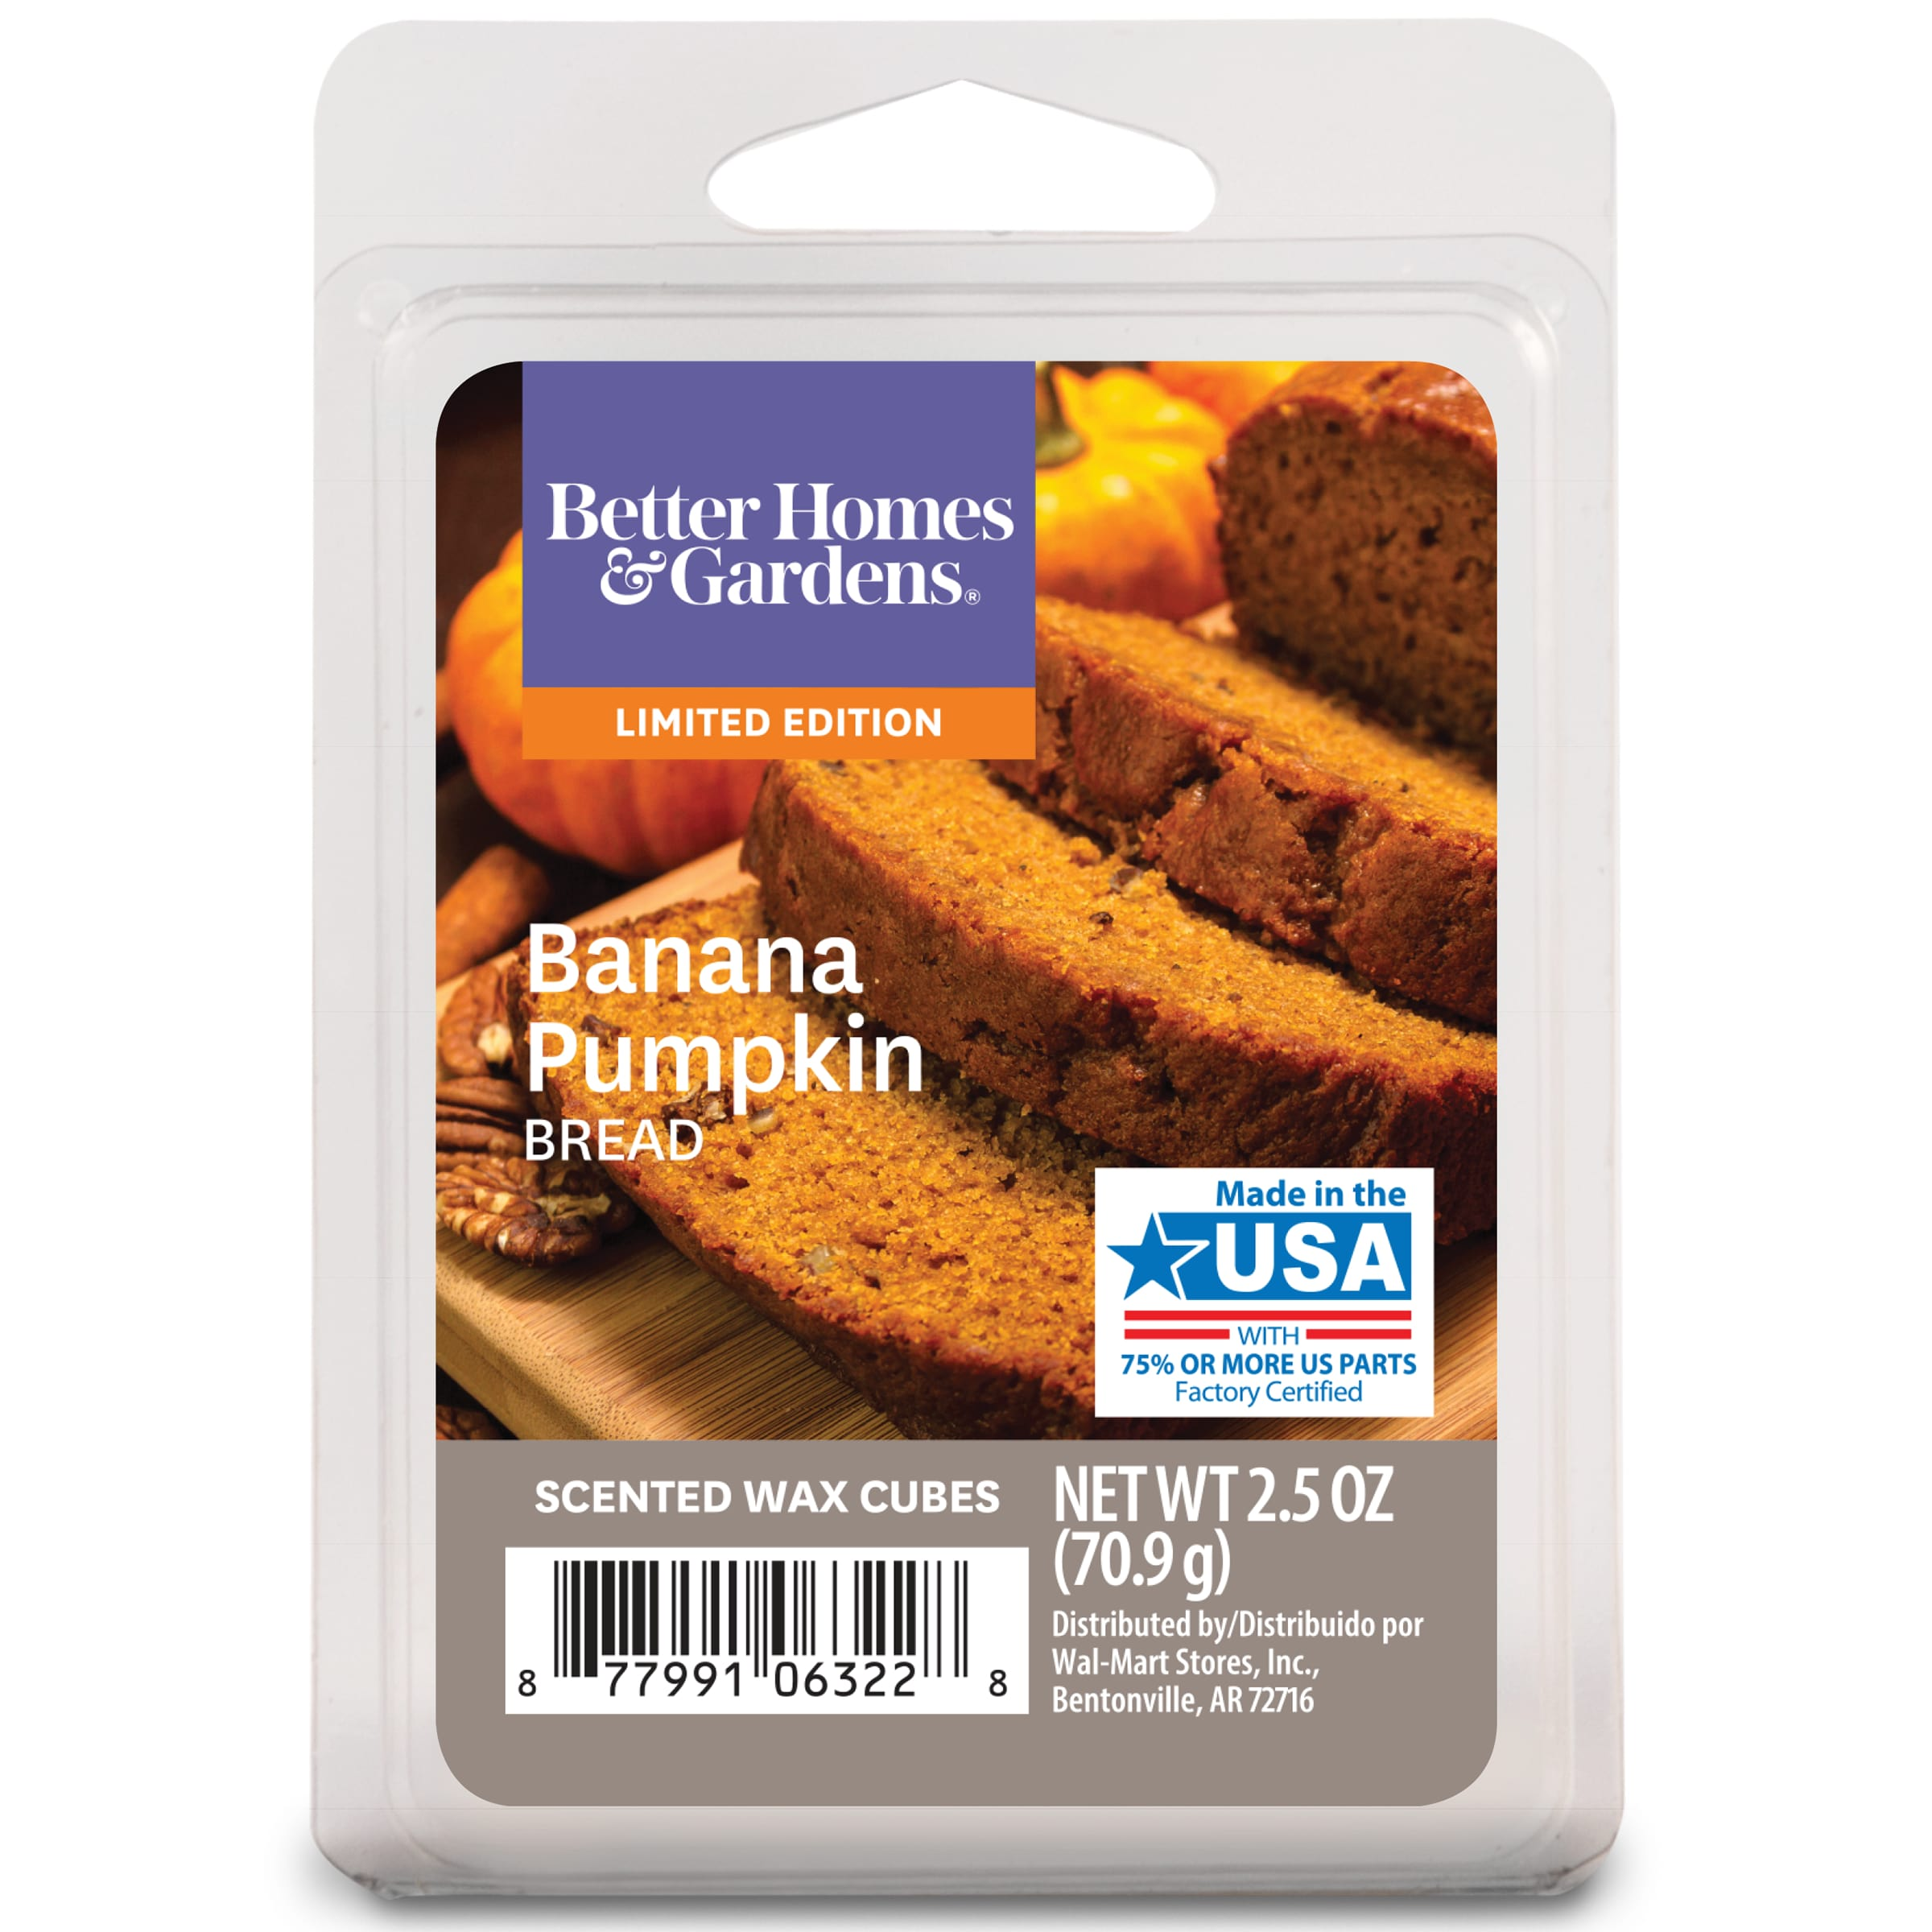 Better Homes & Gardens 2.5 oz Banana Pumpkin Bread Wax Scented Wax Melts